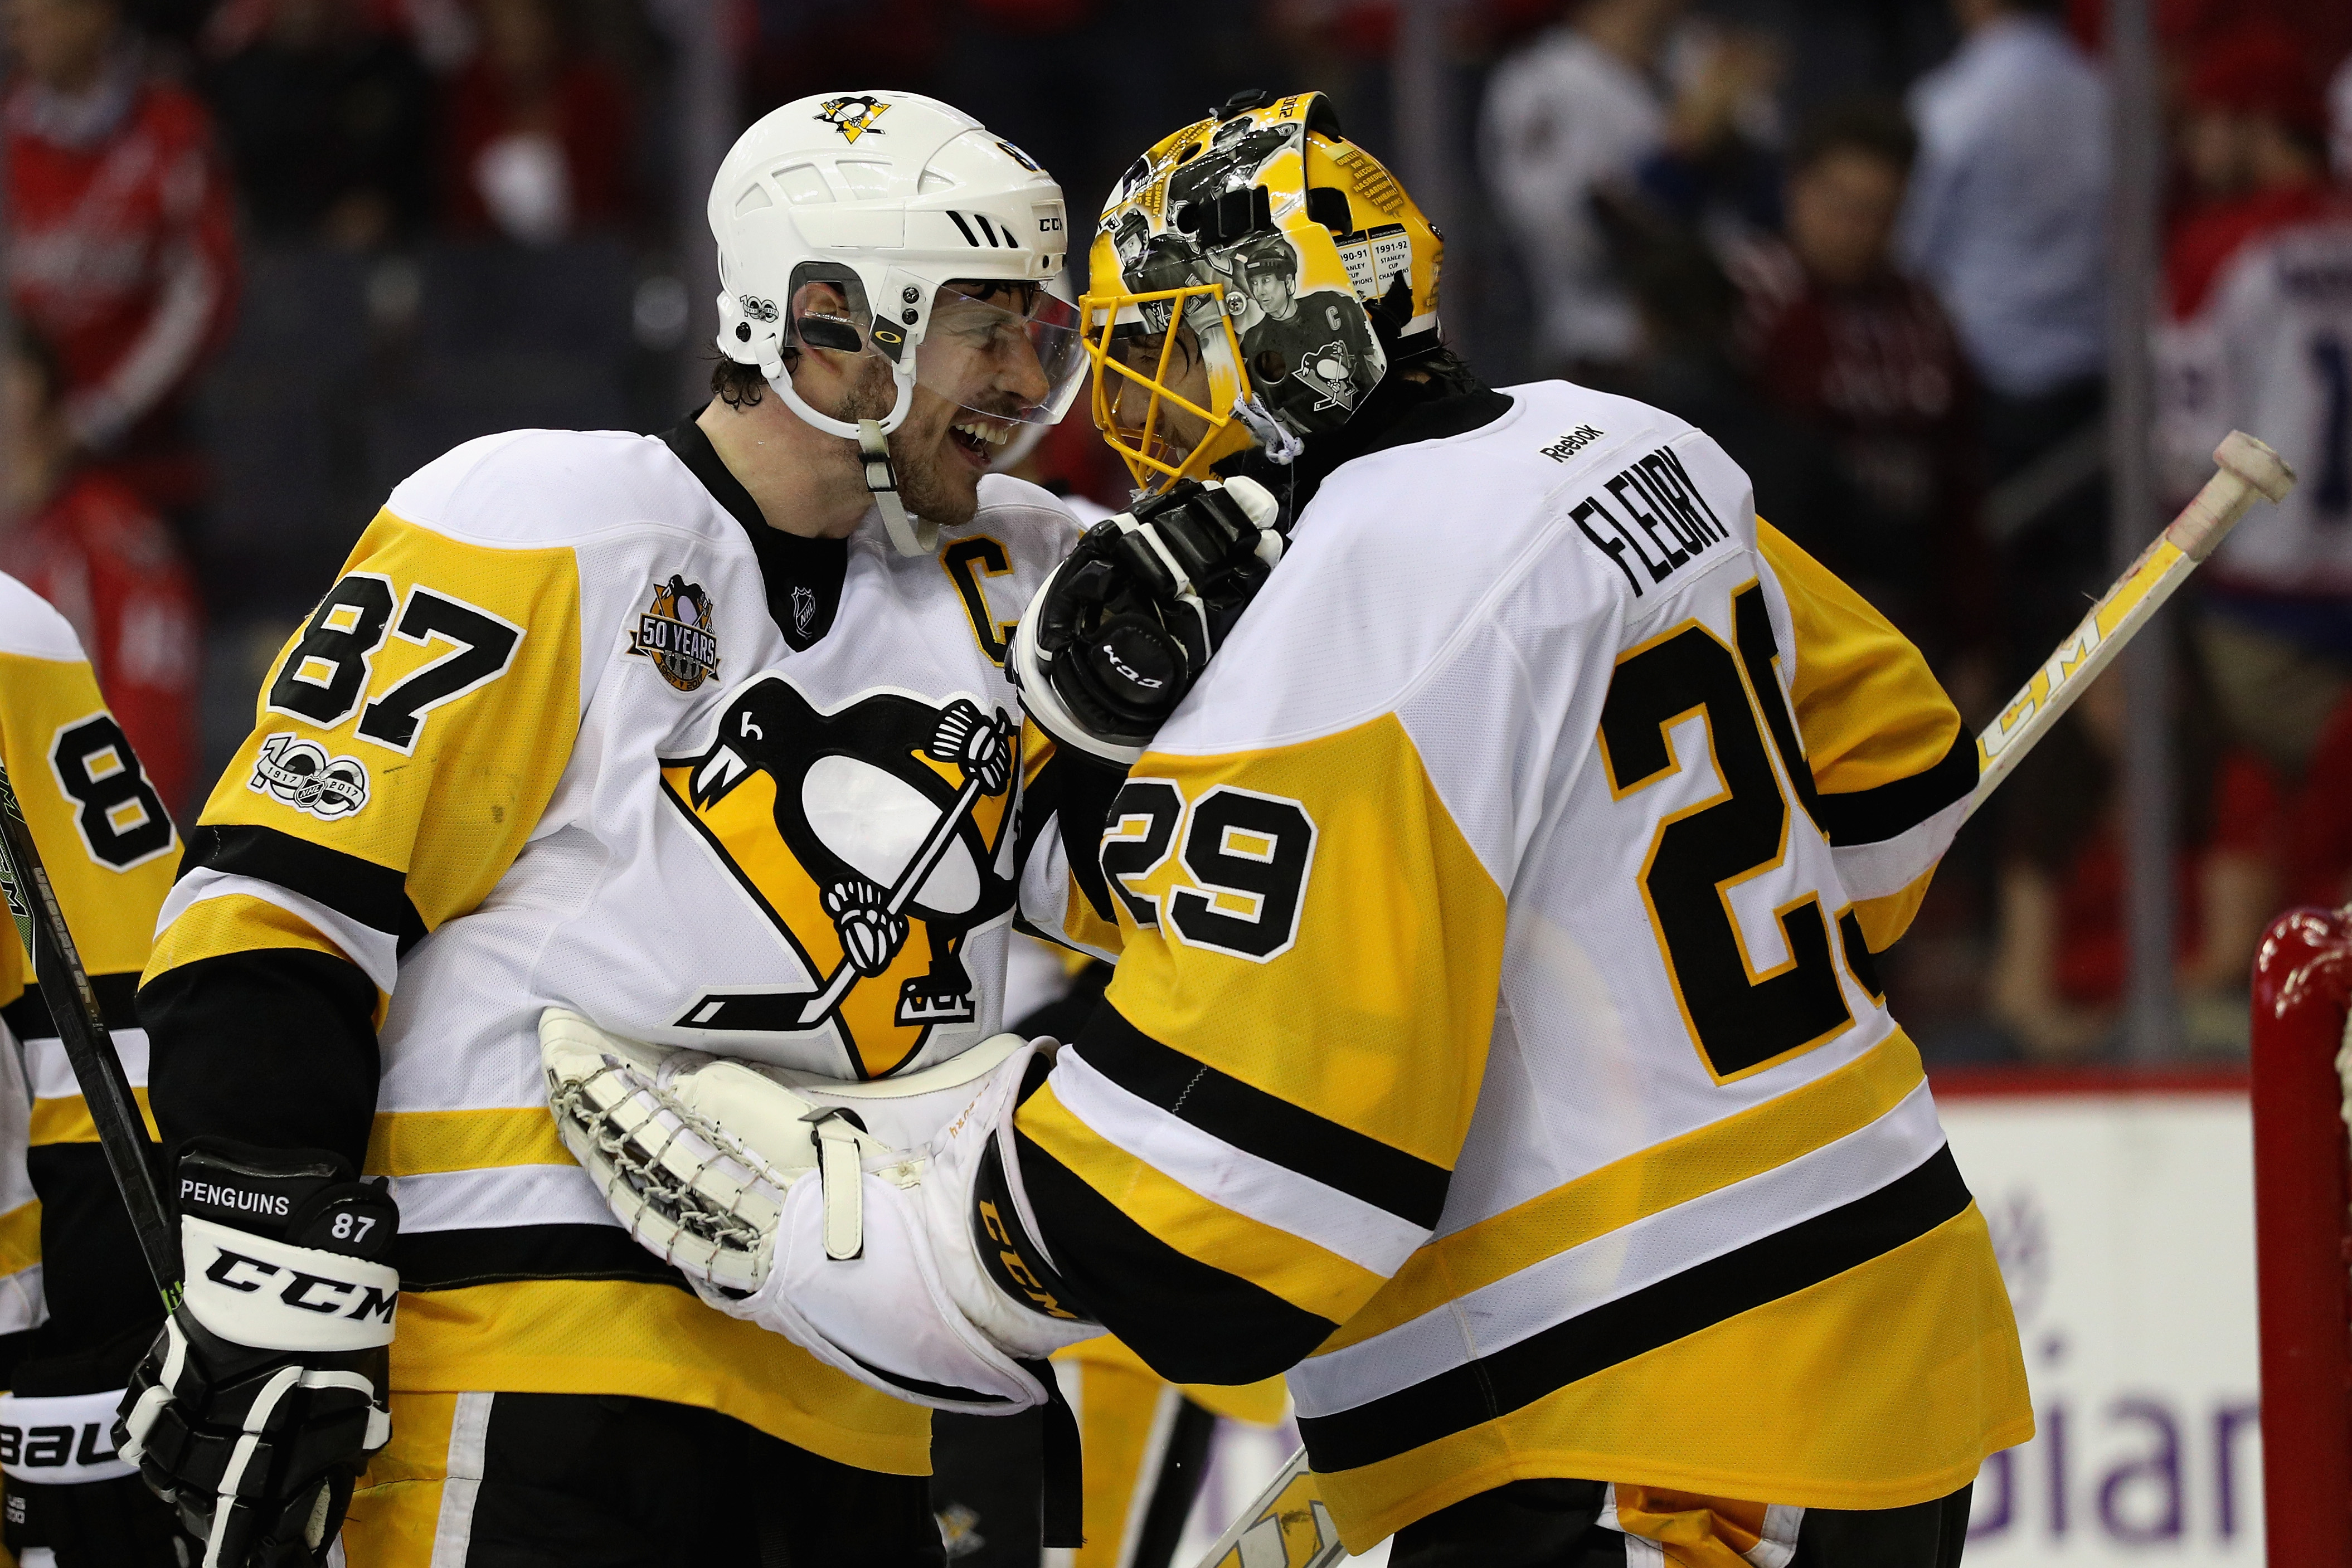 The Penguins' Sidney Crosby and Marc-Andre Fleury beat Washington ... again. (Getty Images)